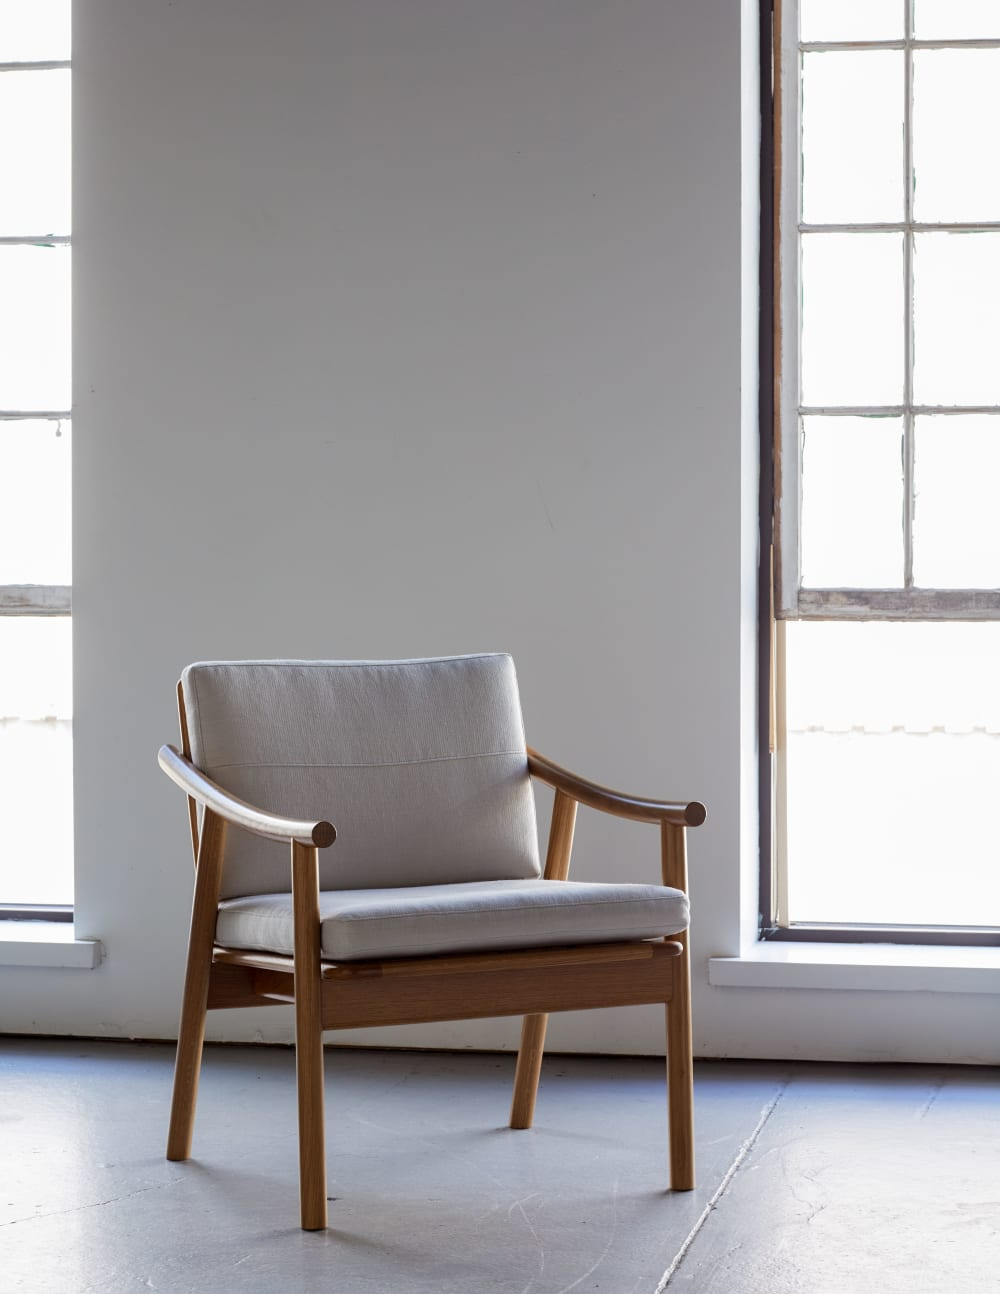 Modern chair with natural wood